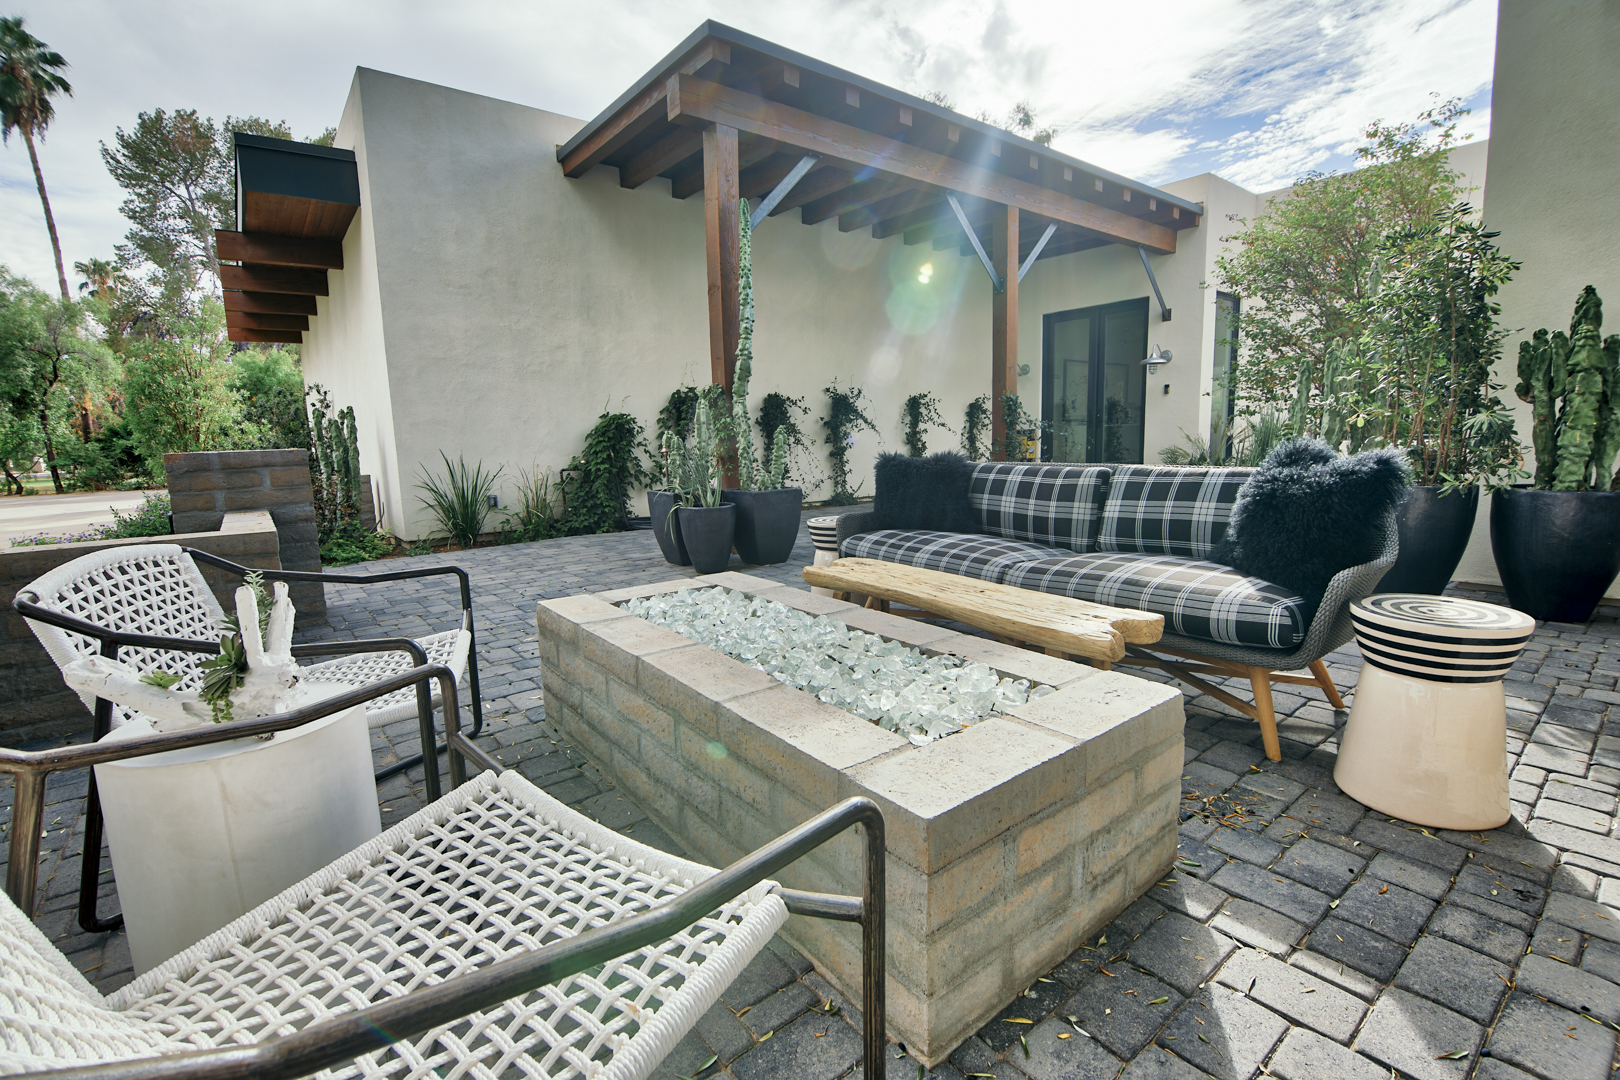 Bungalow Furniture & Accessories - Scottsdale, AZ - Patio